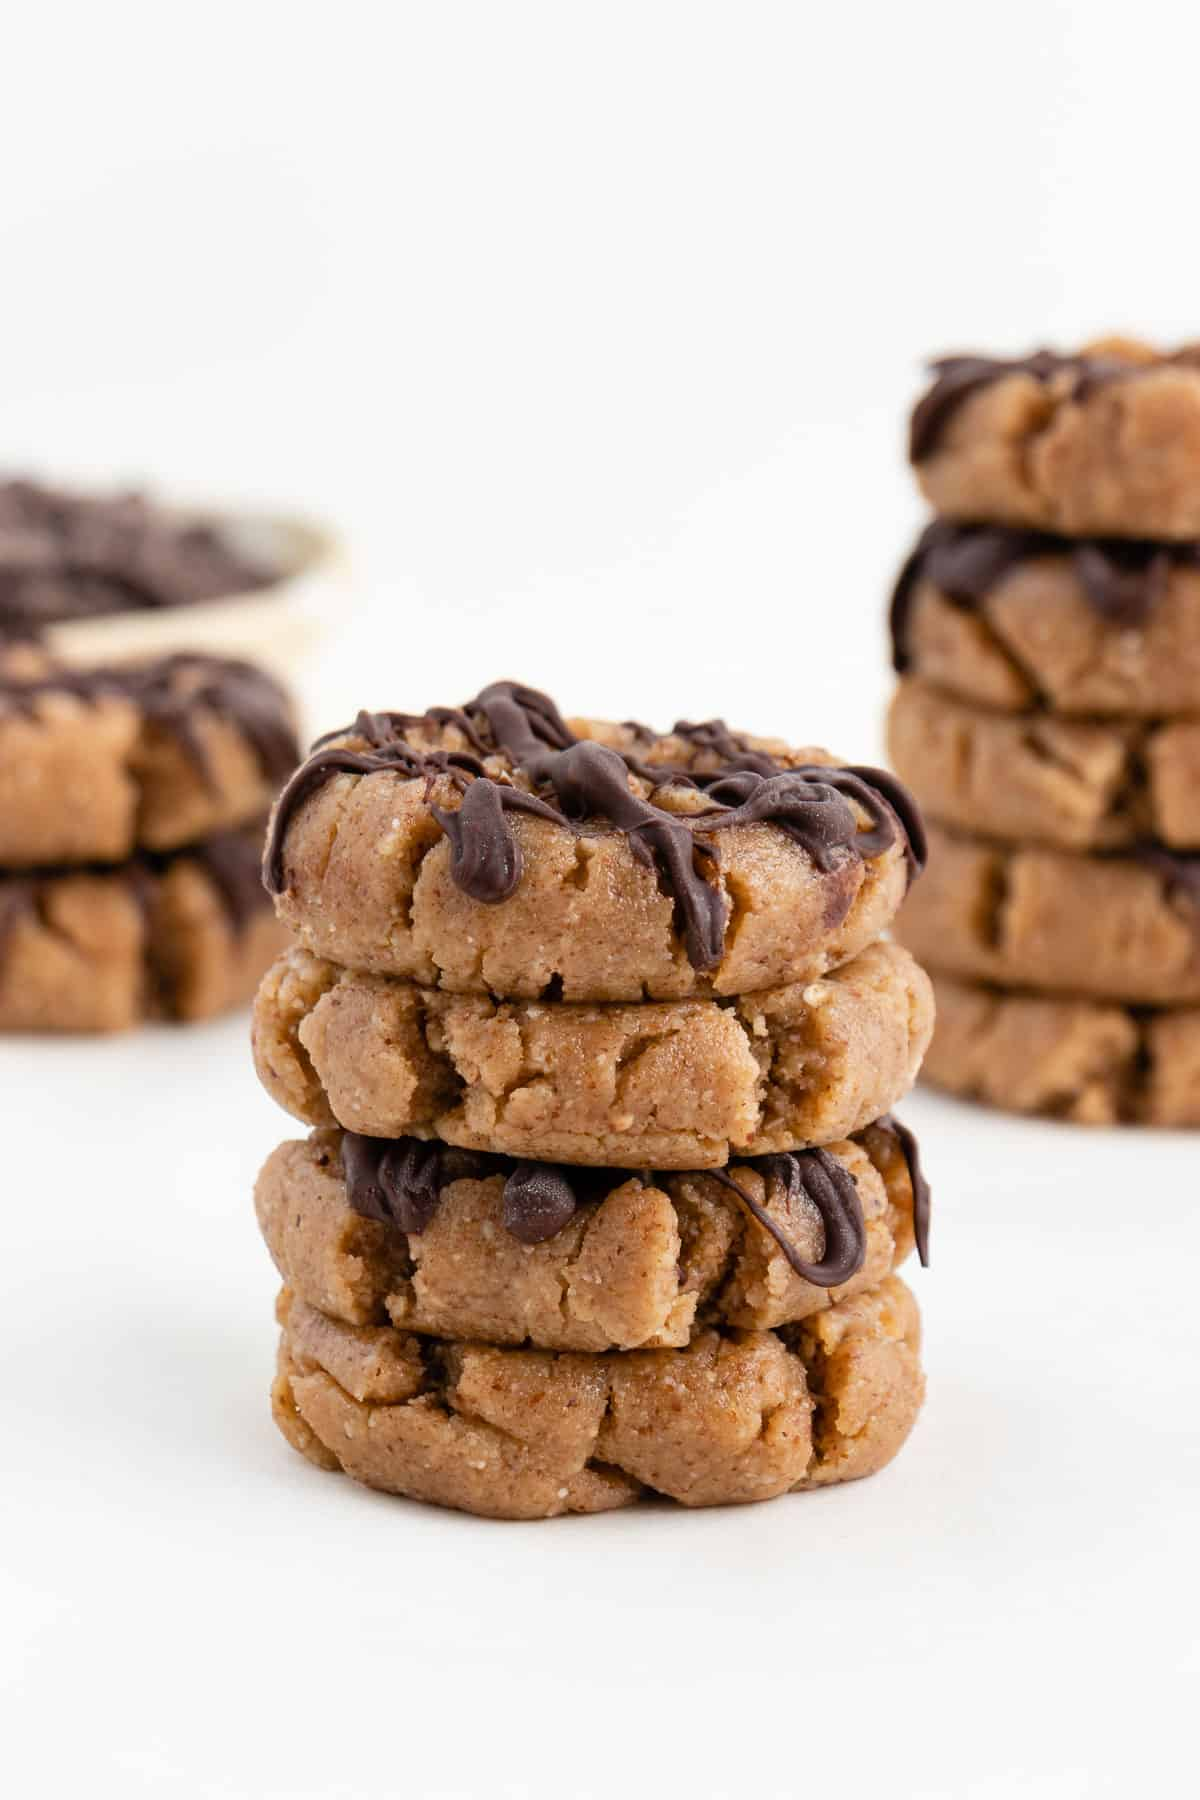 a stack of no bake almond butter cookies in front of a bowl of chocolate chips